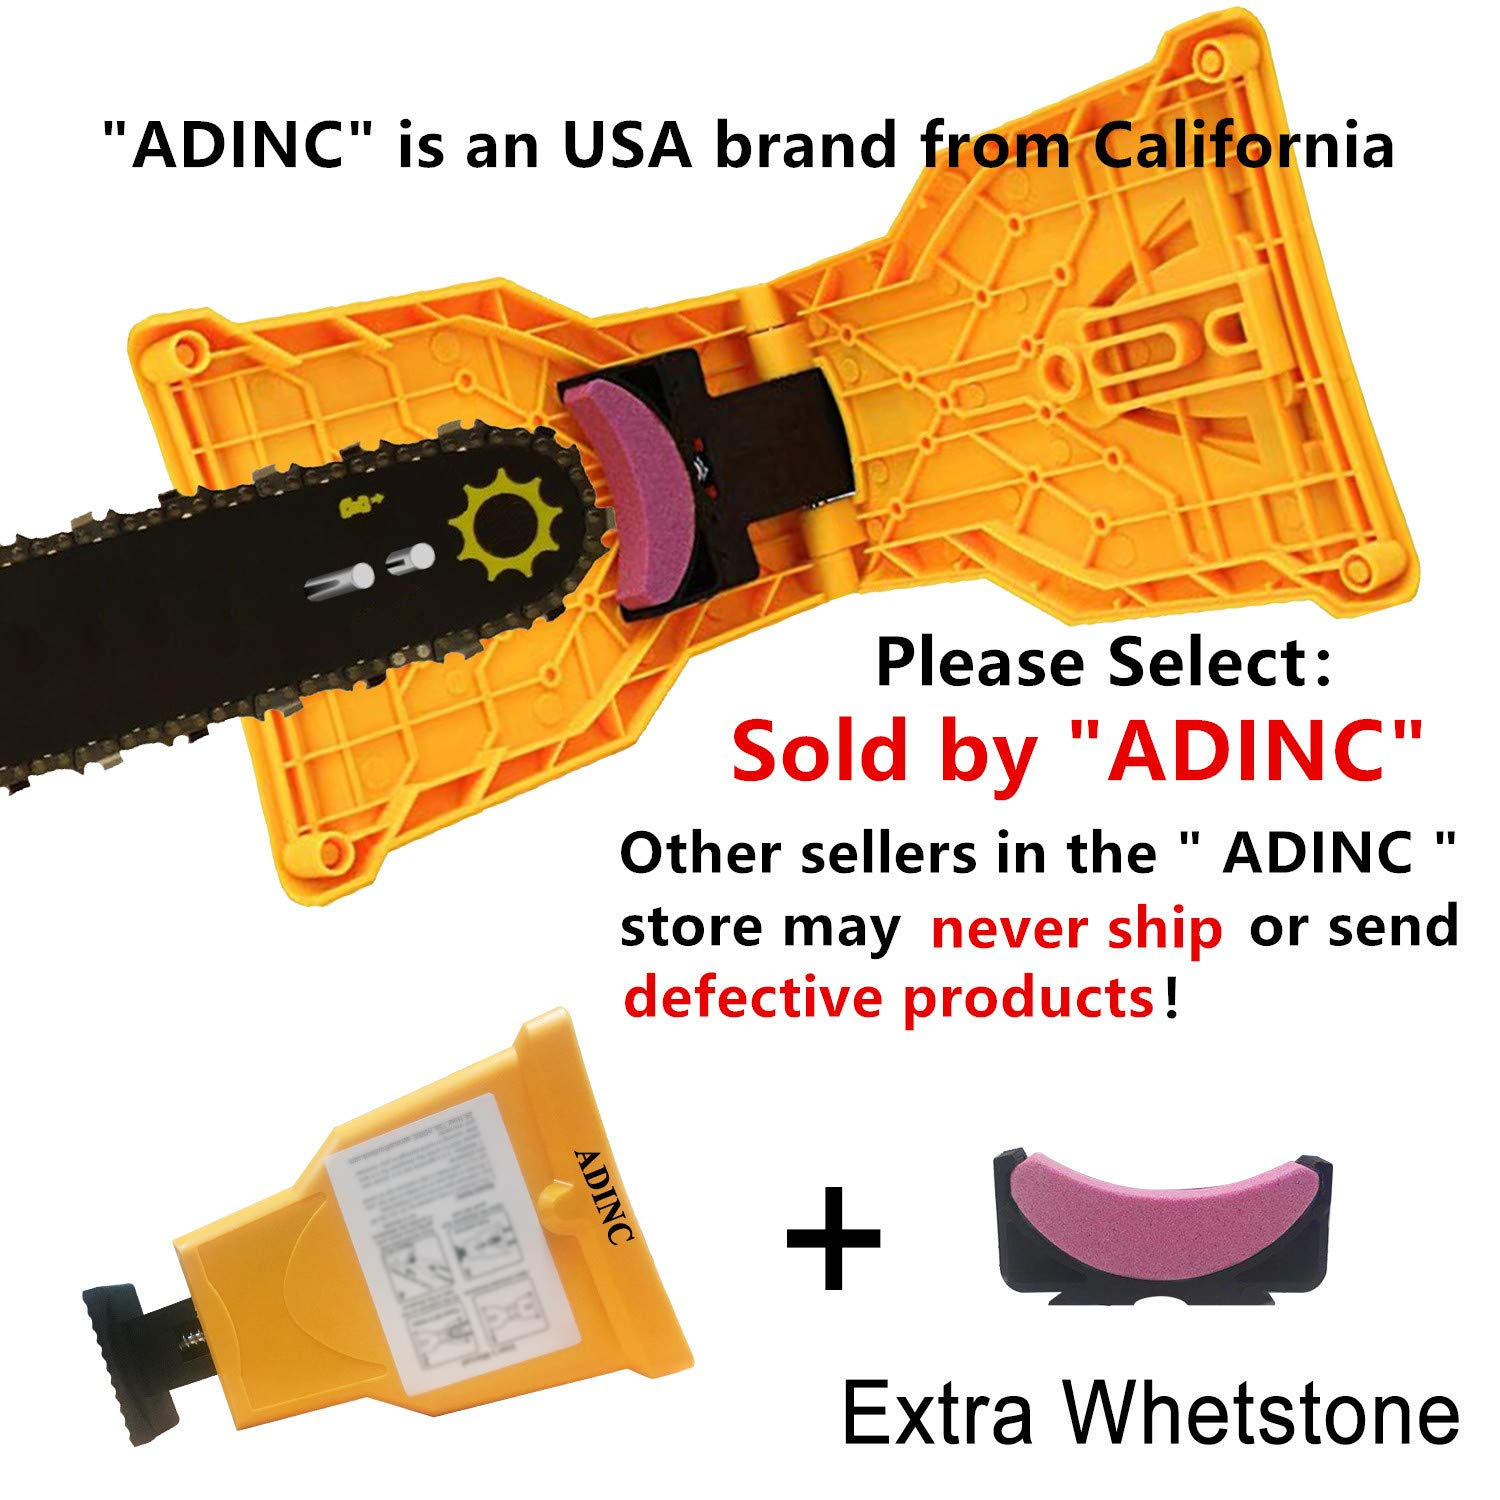 ADINC Chainsaw Sharpener Universal Chain Saw Blade Sharpener Fast Sharpening Stone Grinder Tools Bar Mounted Chainsaw Teeth Sharpener Fit for 14/16/18/20 Inch Two Holes Chain Saw Bar by ADINC